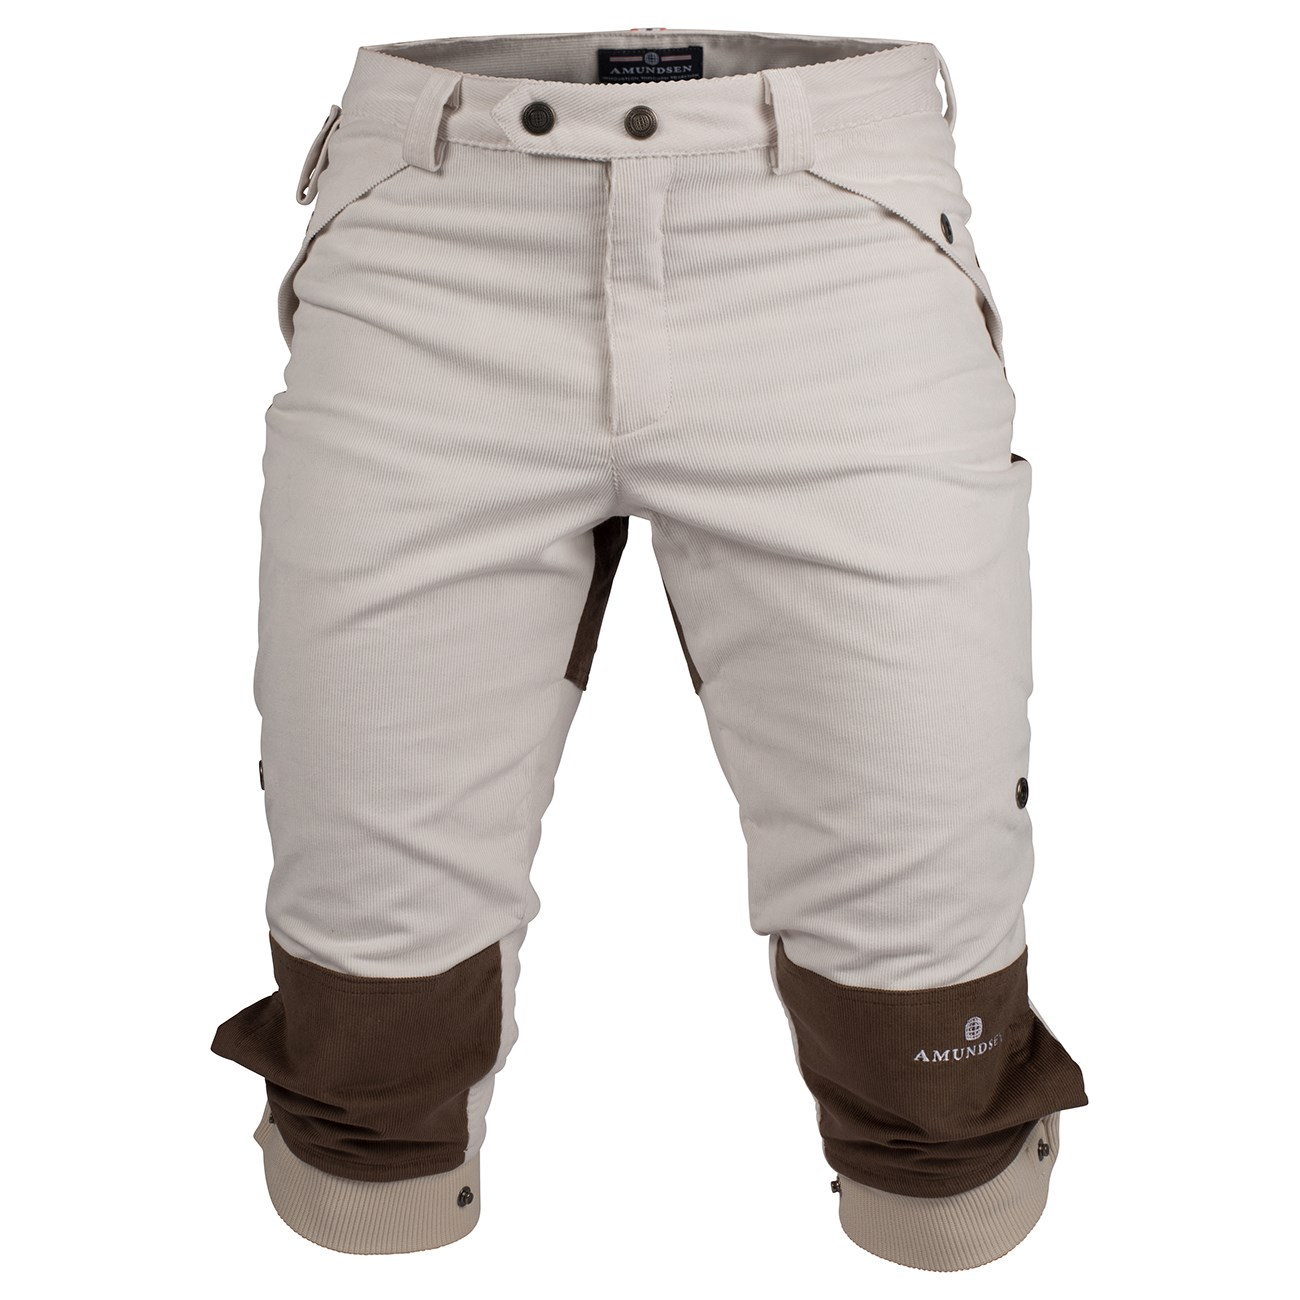 718452836bfb Braasport - Amundsen Sports Summer Concord Knickerbocker Nikkers